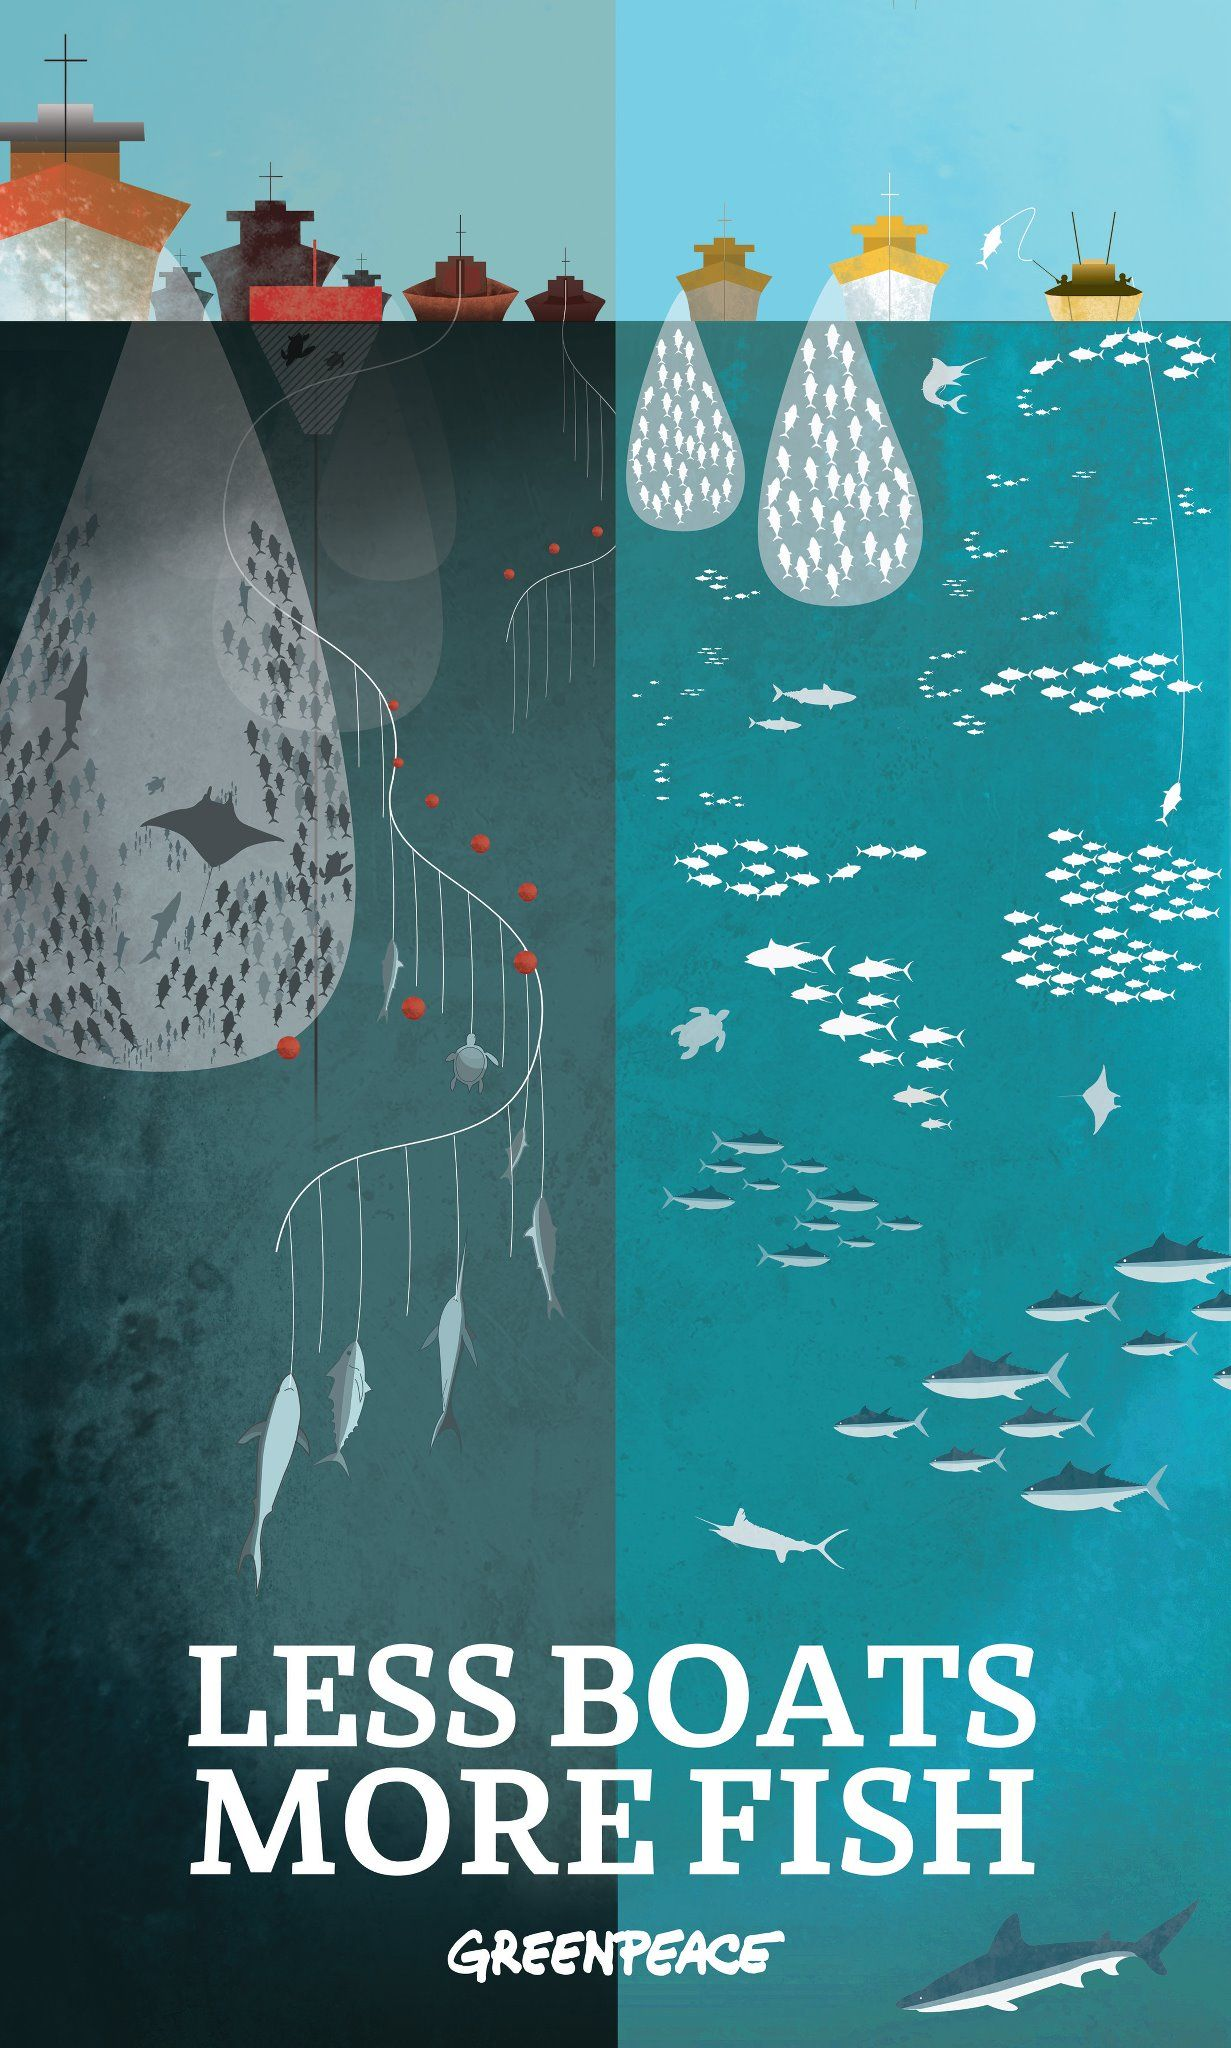 Poster design environmental issues - Greenpeace Oceans Poster